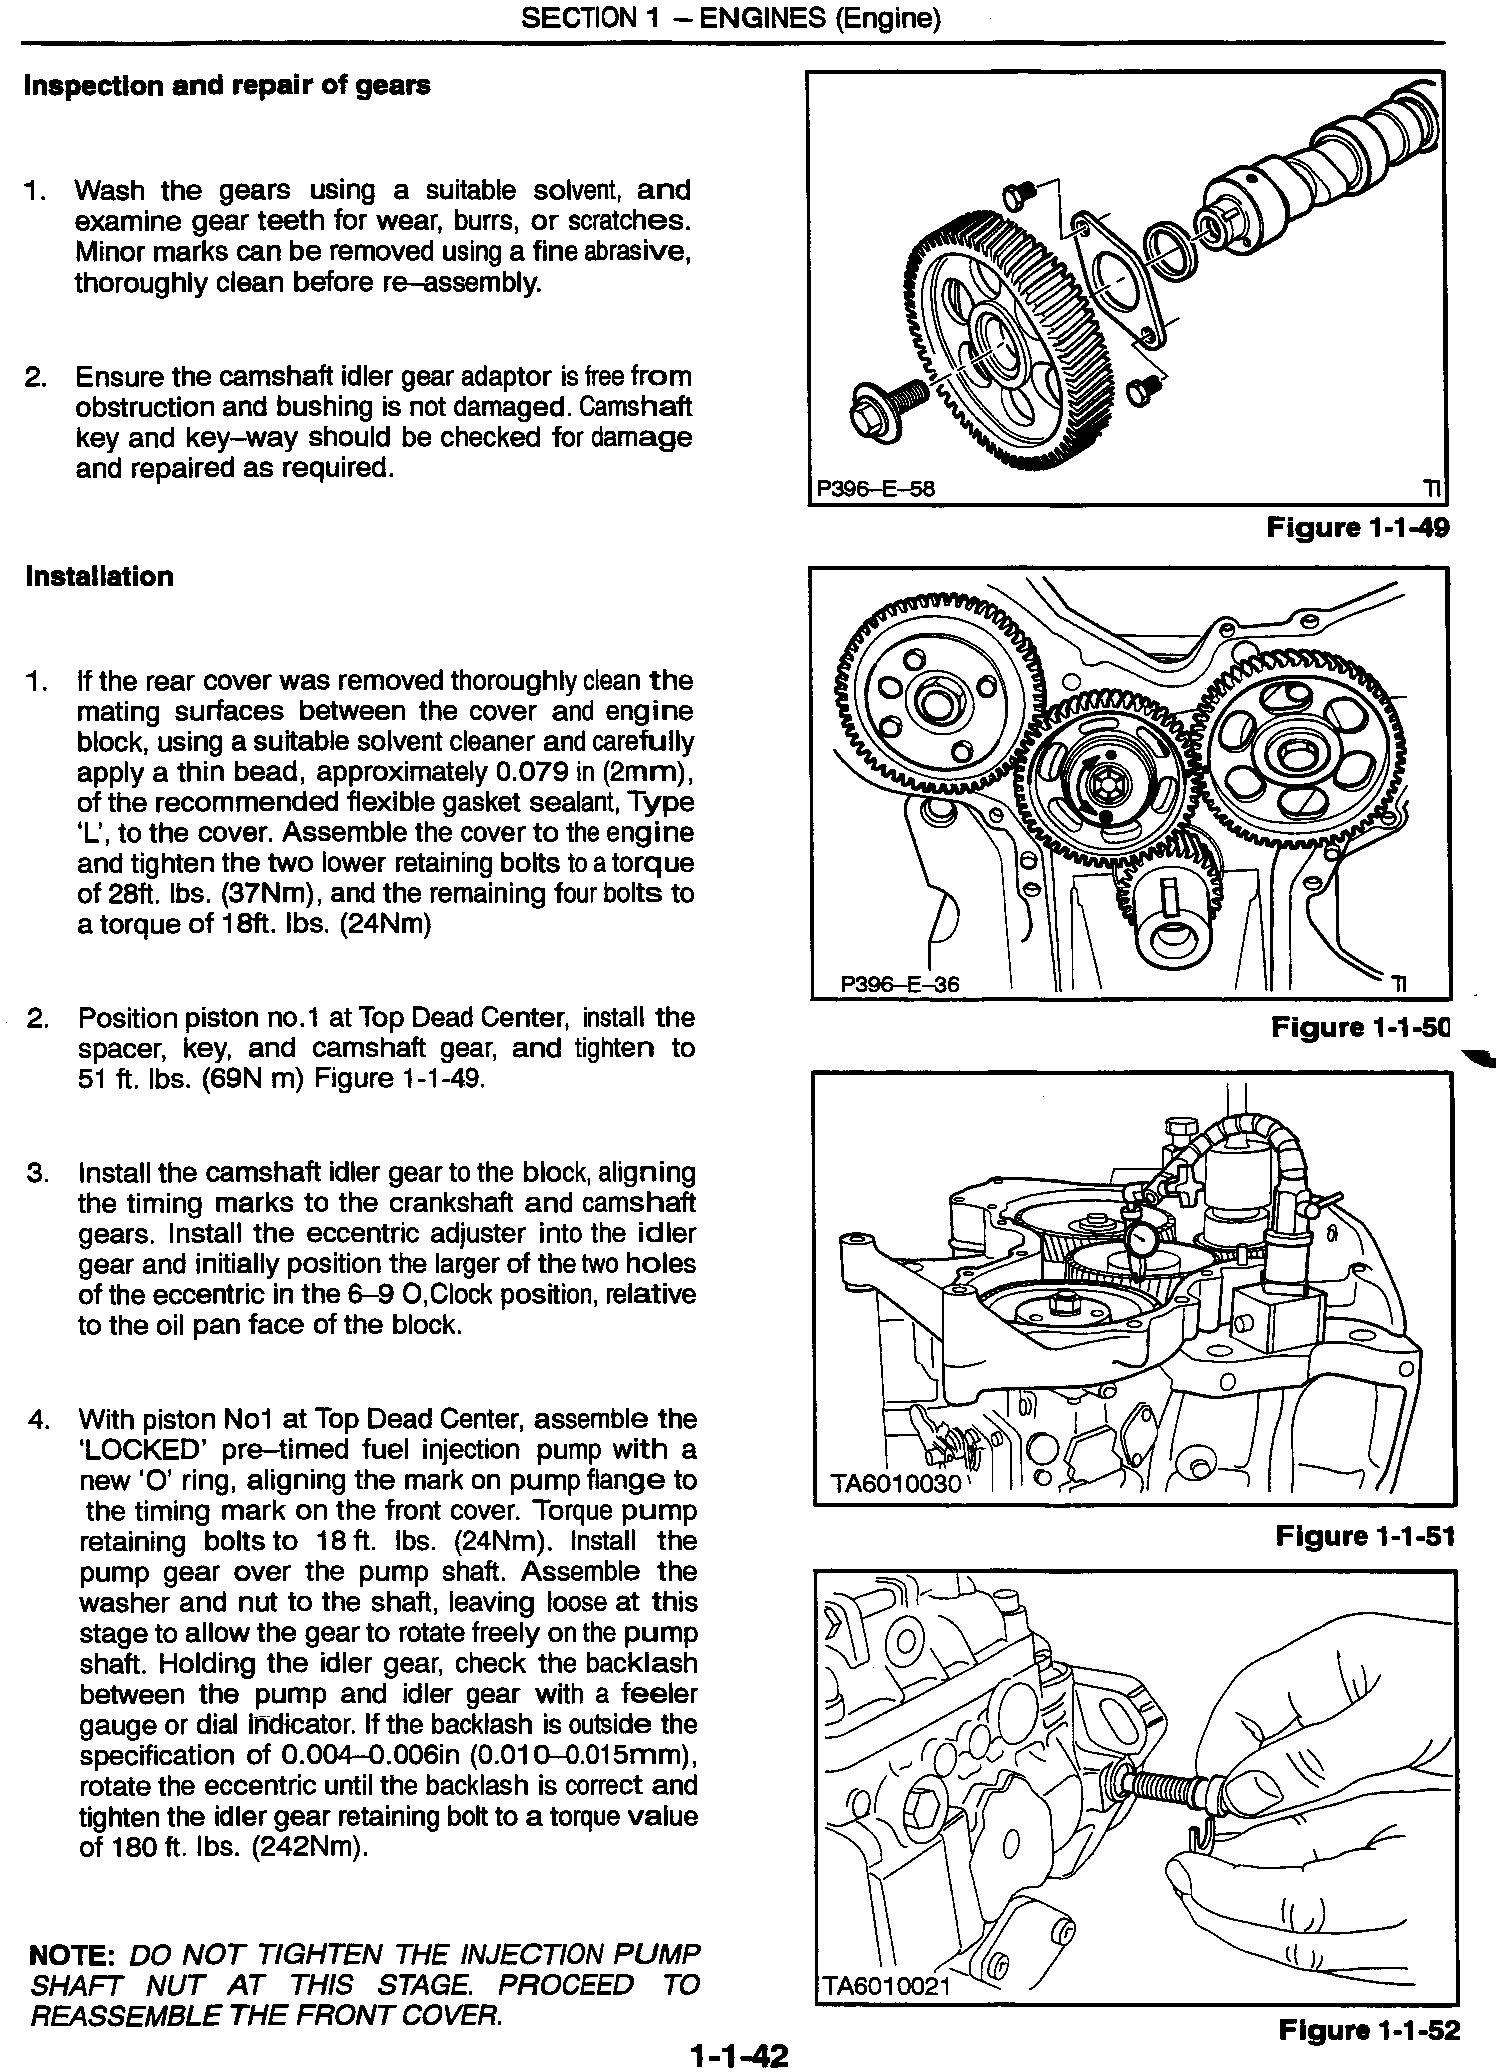 Ford New Holland / 8160, 8260, 8360, 8560 Tractors Complete Service Manual - 2